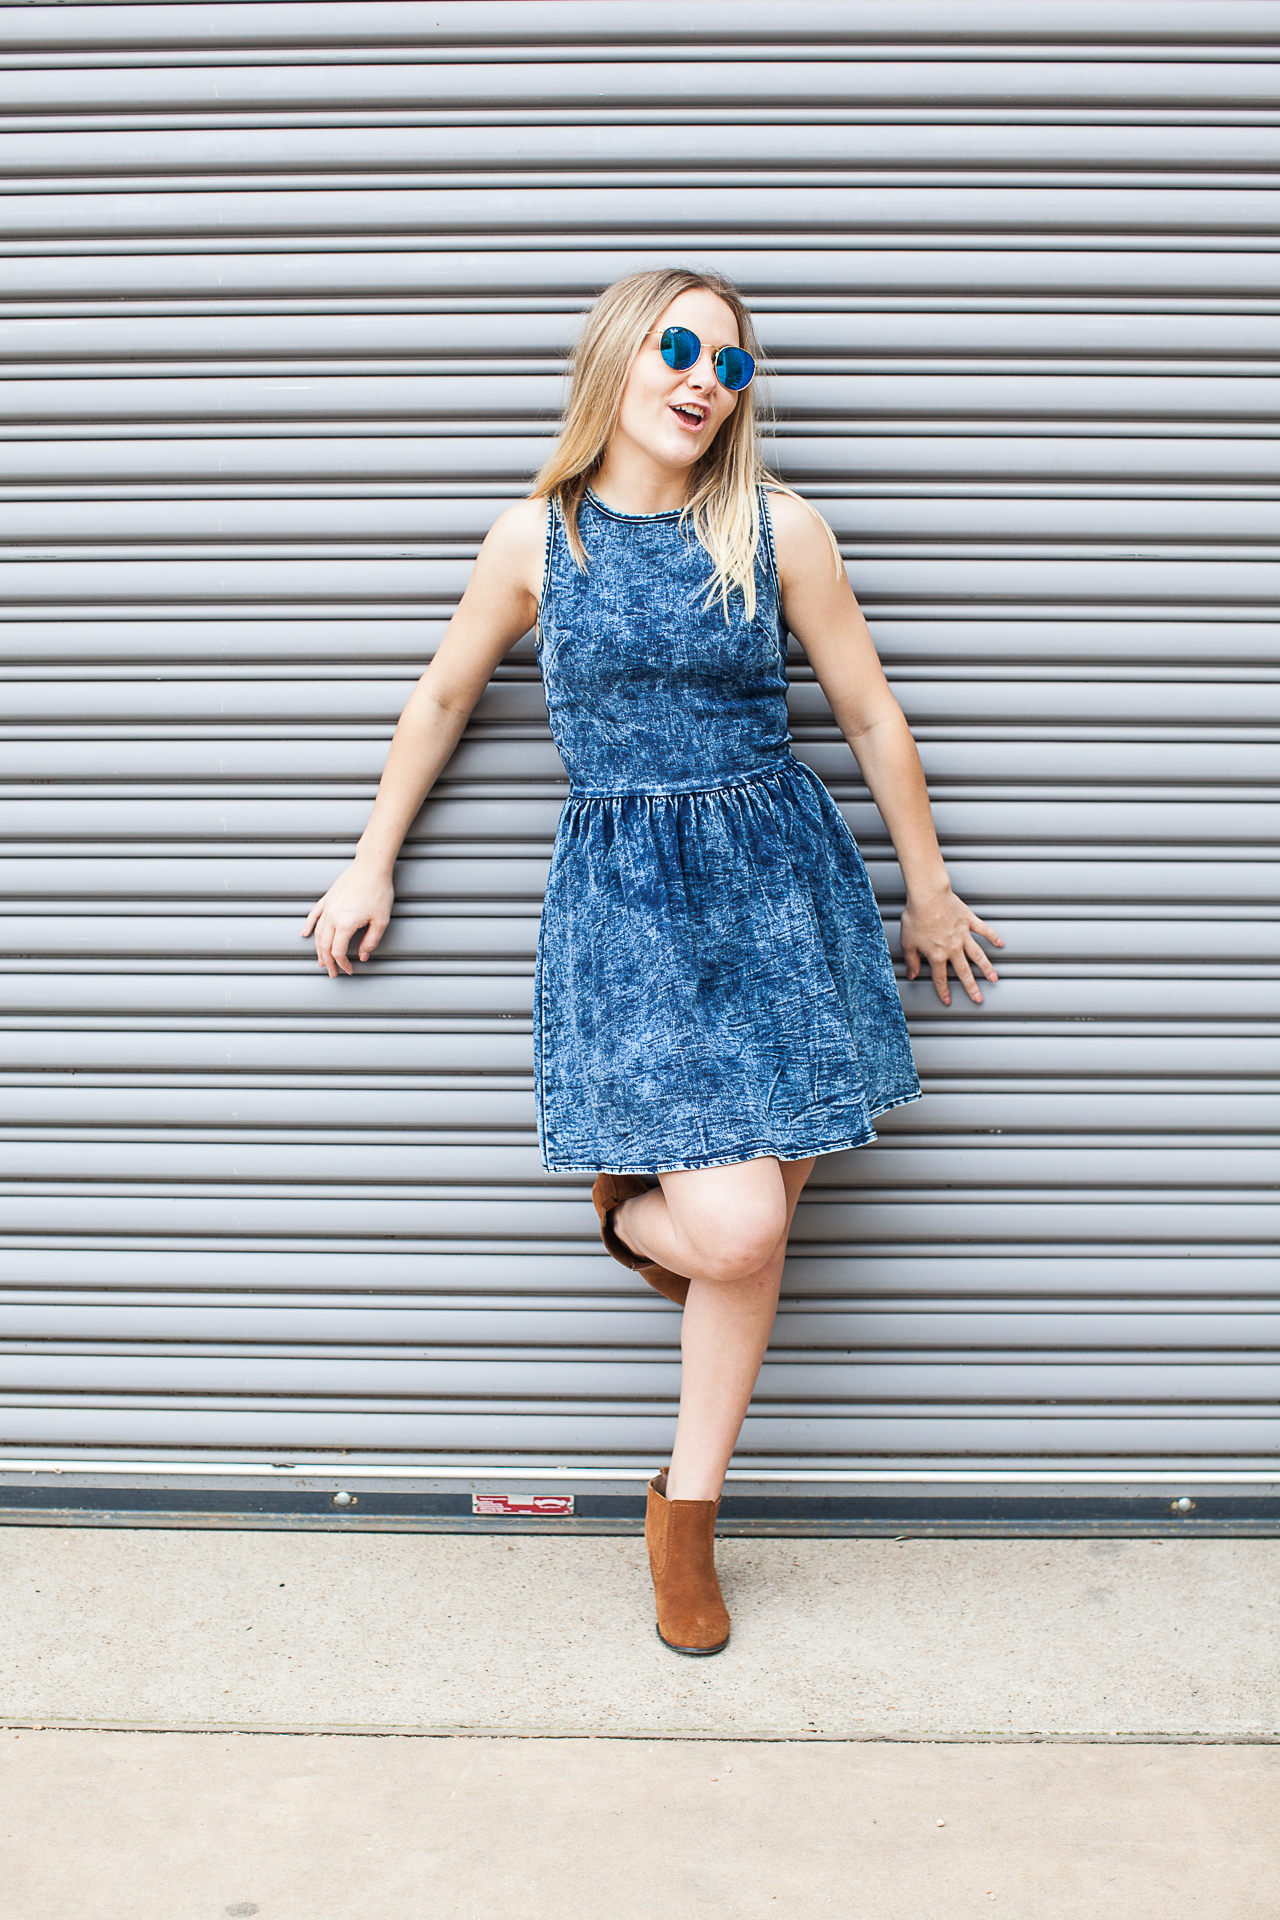 Denim Dress-20.jpg